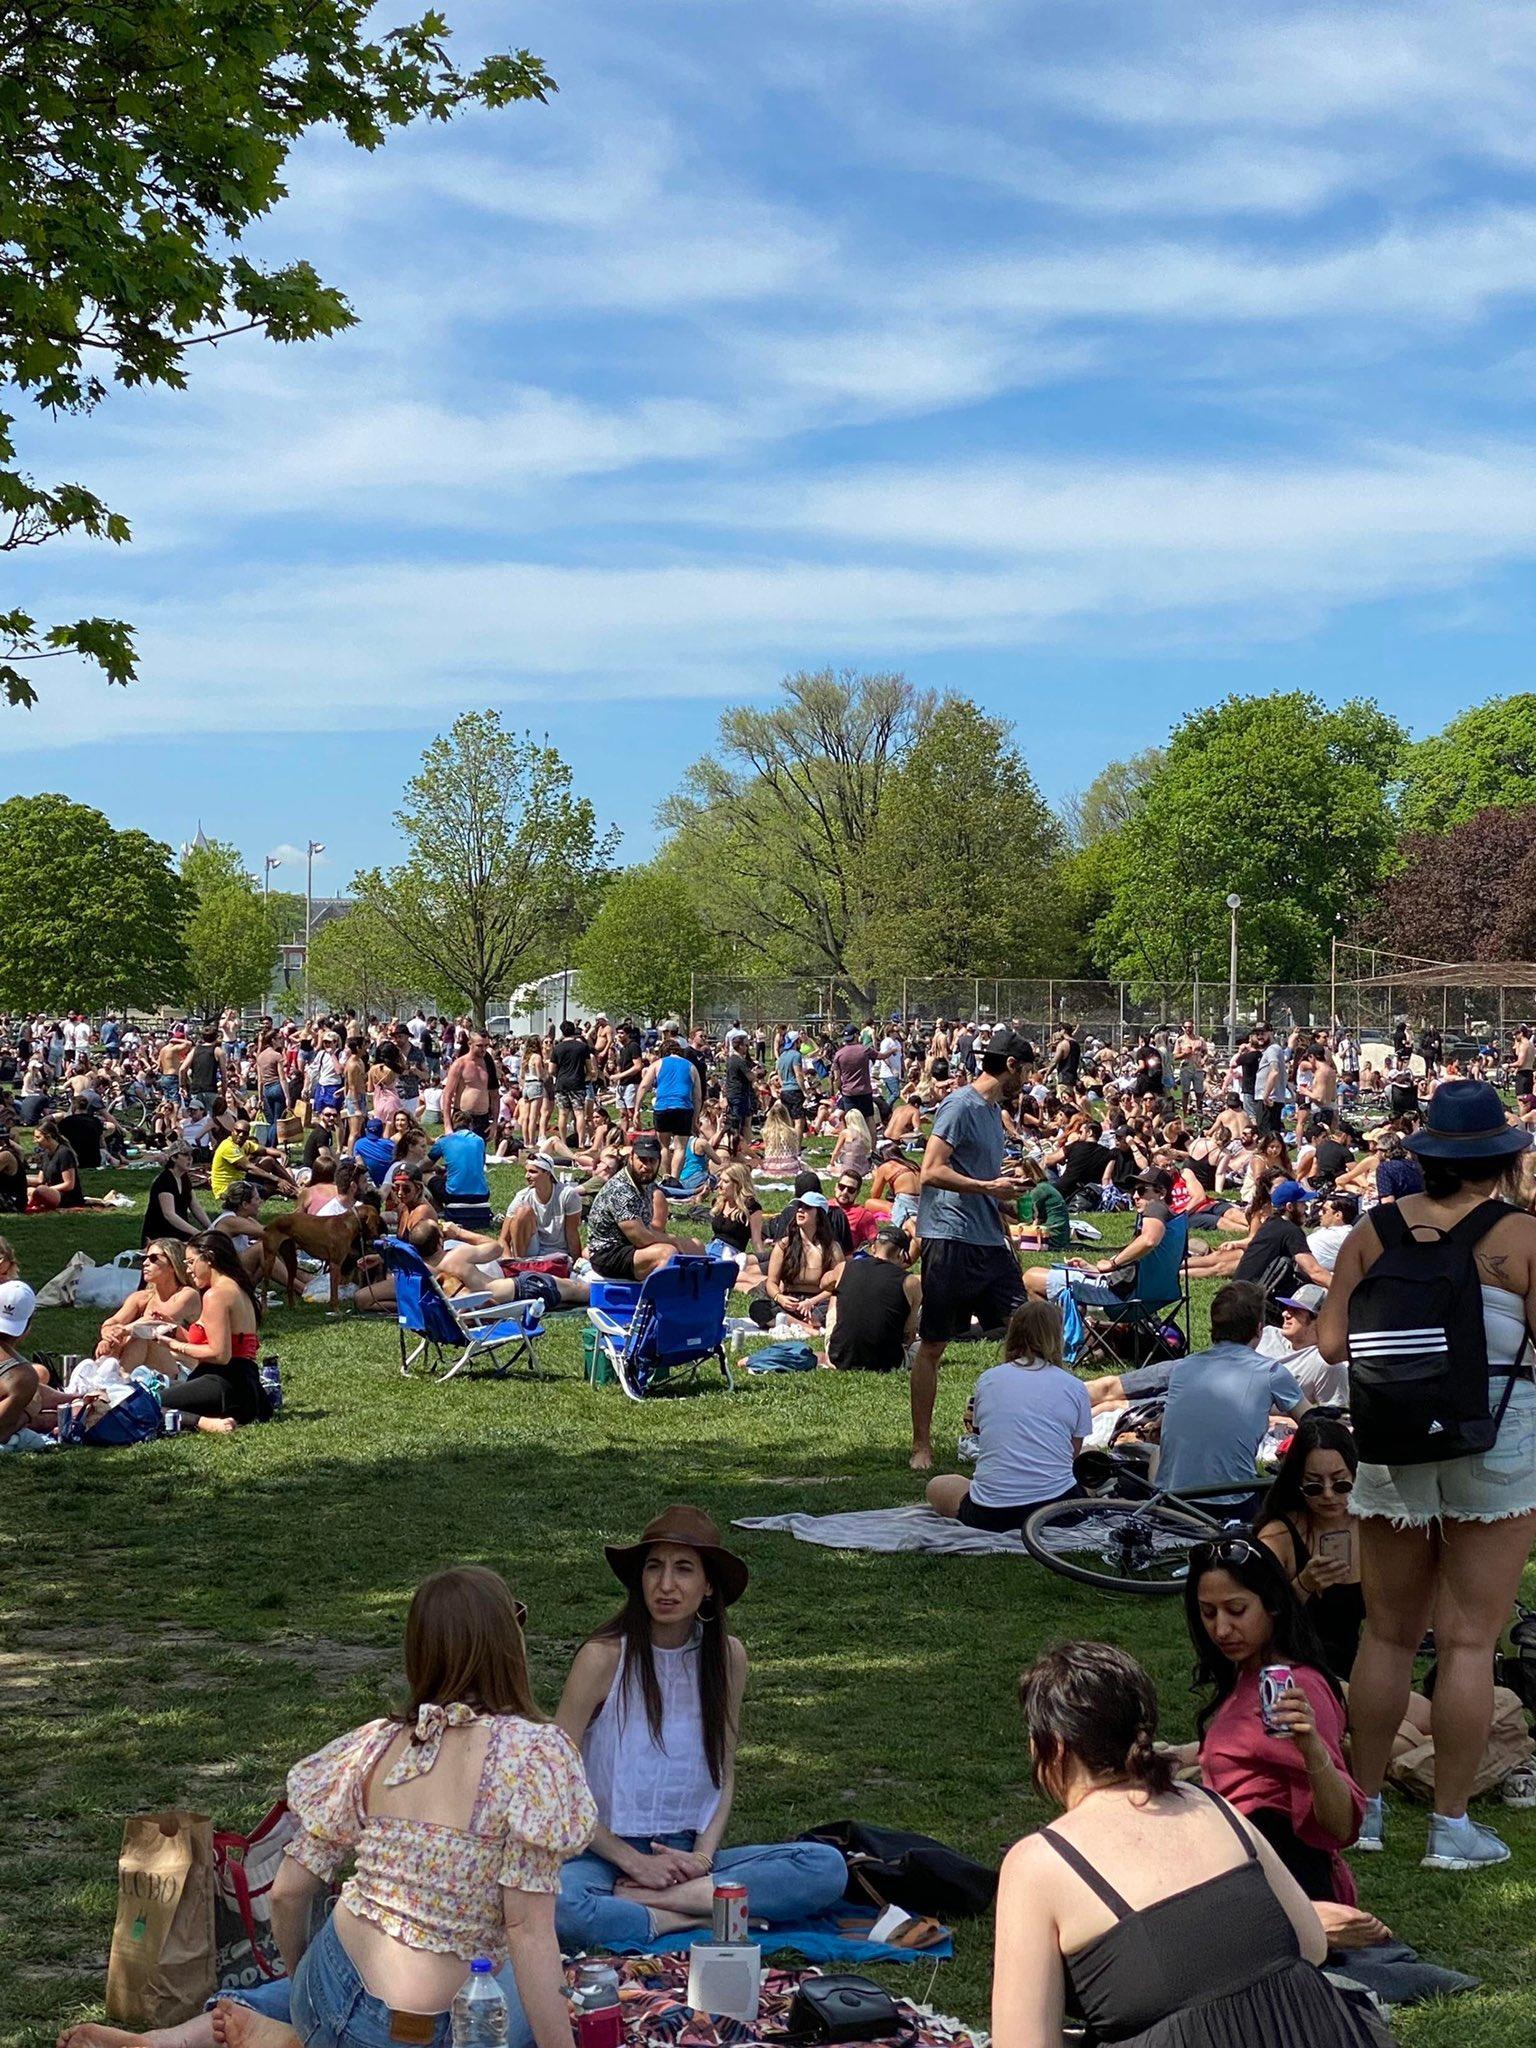 'Dangerous and selfish behaviour': Hundreds gather in Toronto's Trinity Bellwoods despite concerning COVID-19 trends in Ontario